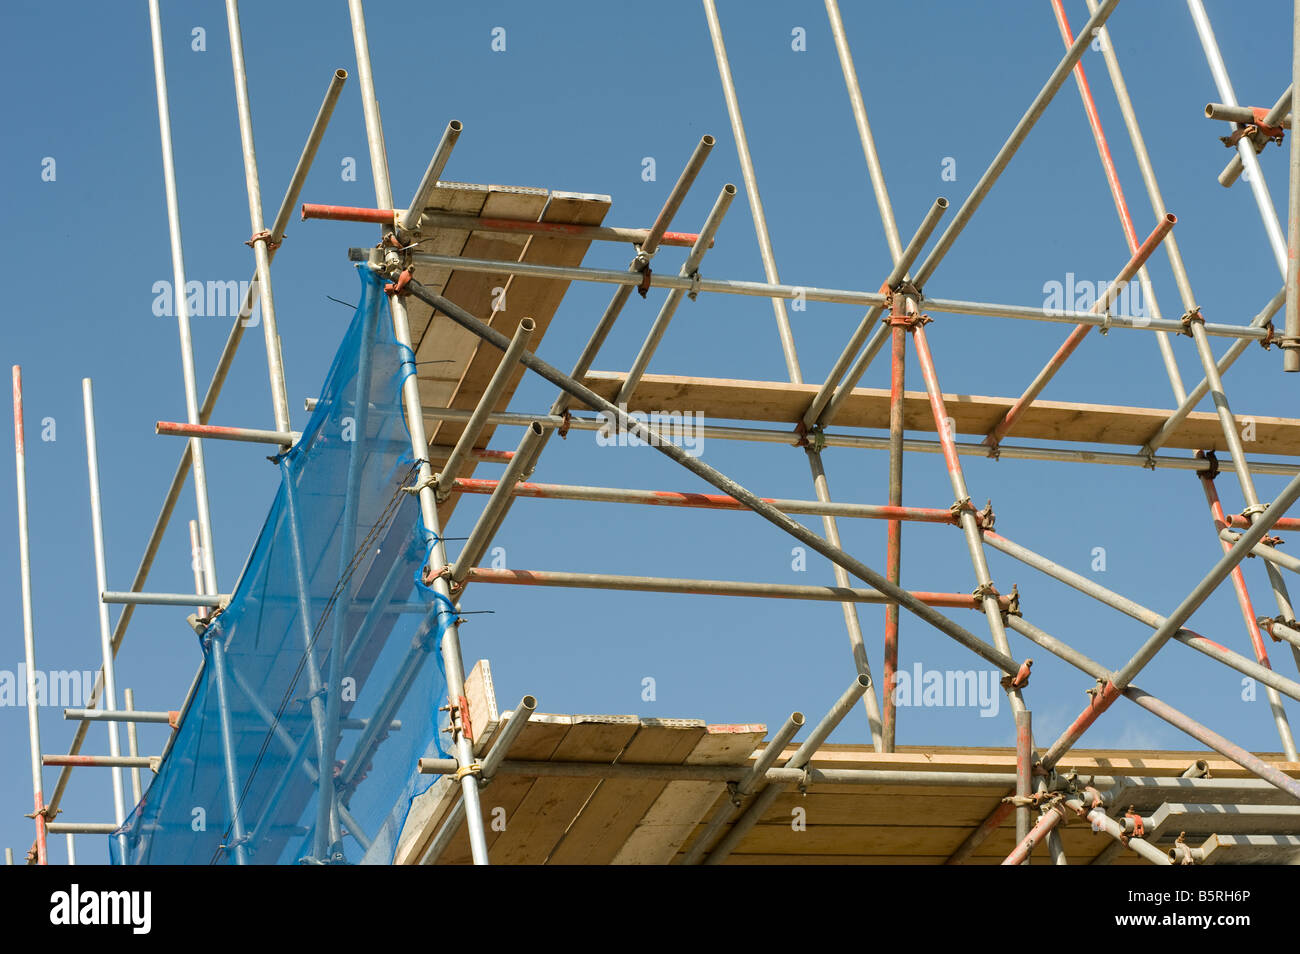 Scaffolding poles on a construction site in the uk - Stock Image